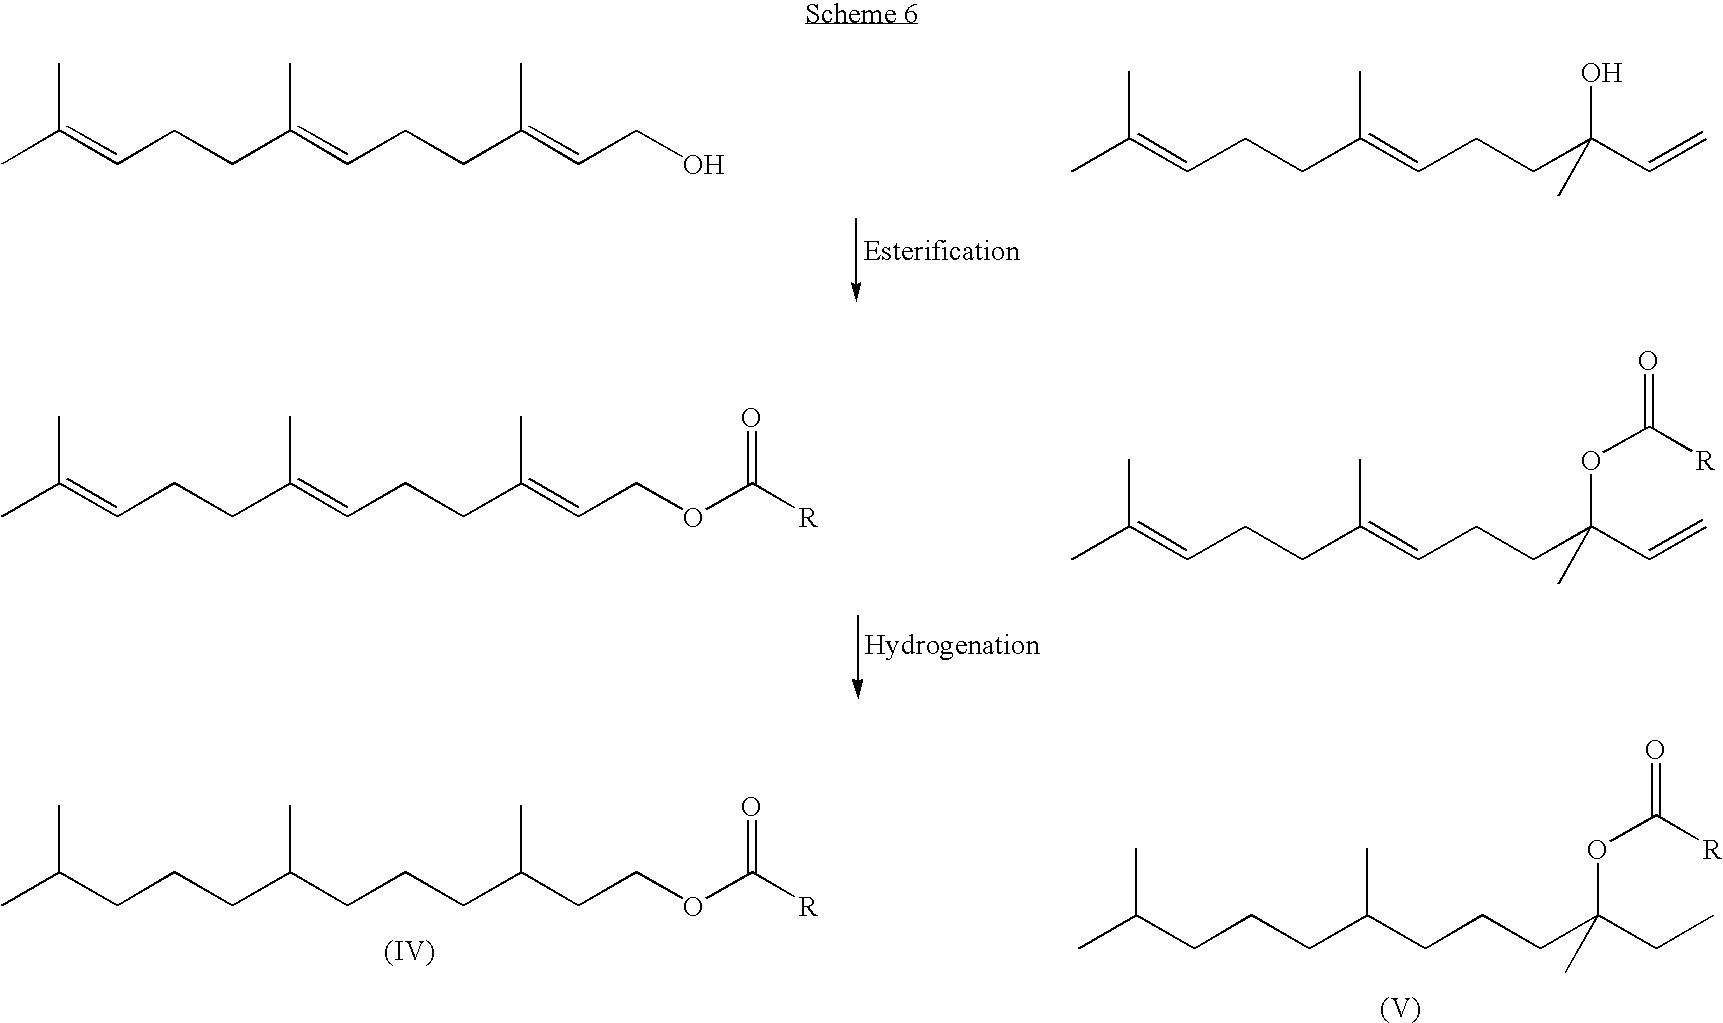 US7846222B2 - Fuel compositions comprising farnesane and